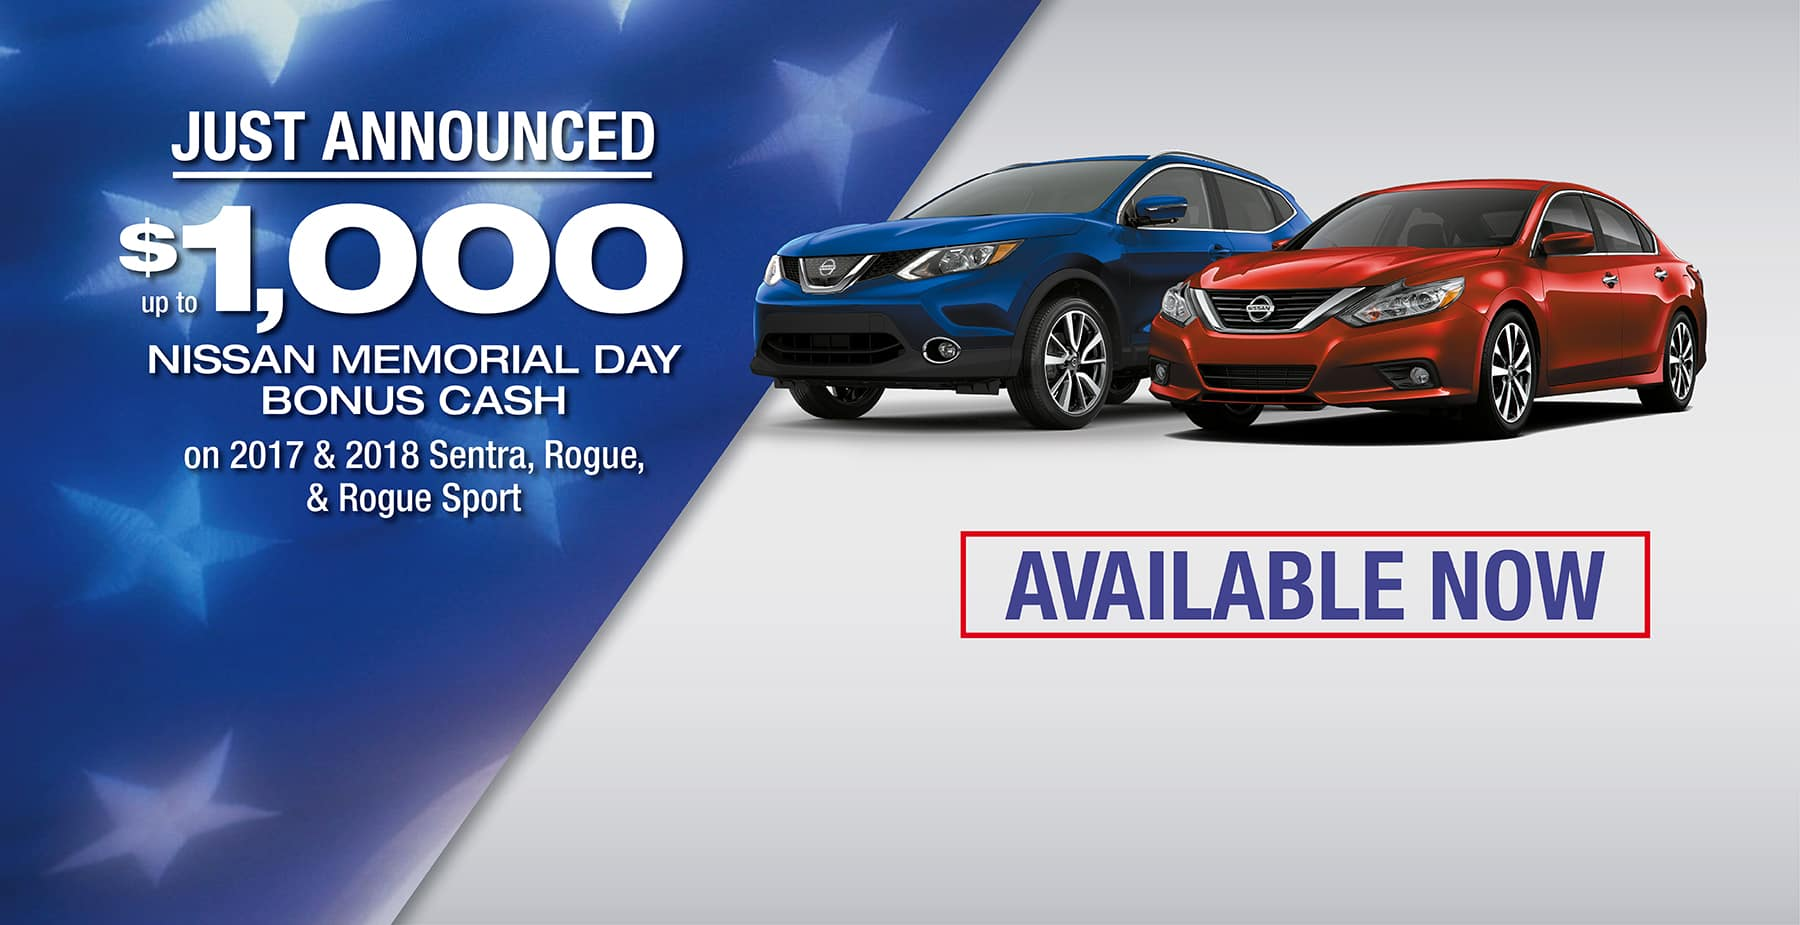 Up to $1,000 Nissan Memorial Day Bonus Cash on 2017 and 2018 Nissan Sentra, Nissan Rogue, and Nissan Rogue Sport at Star Nissan!